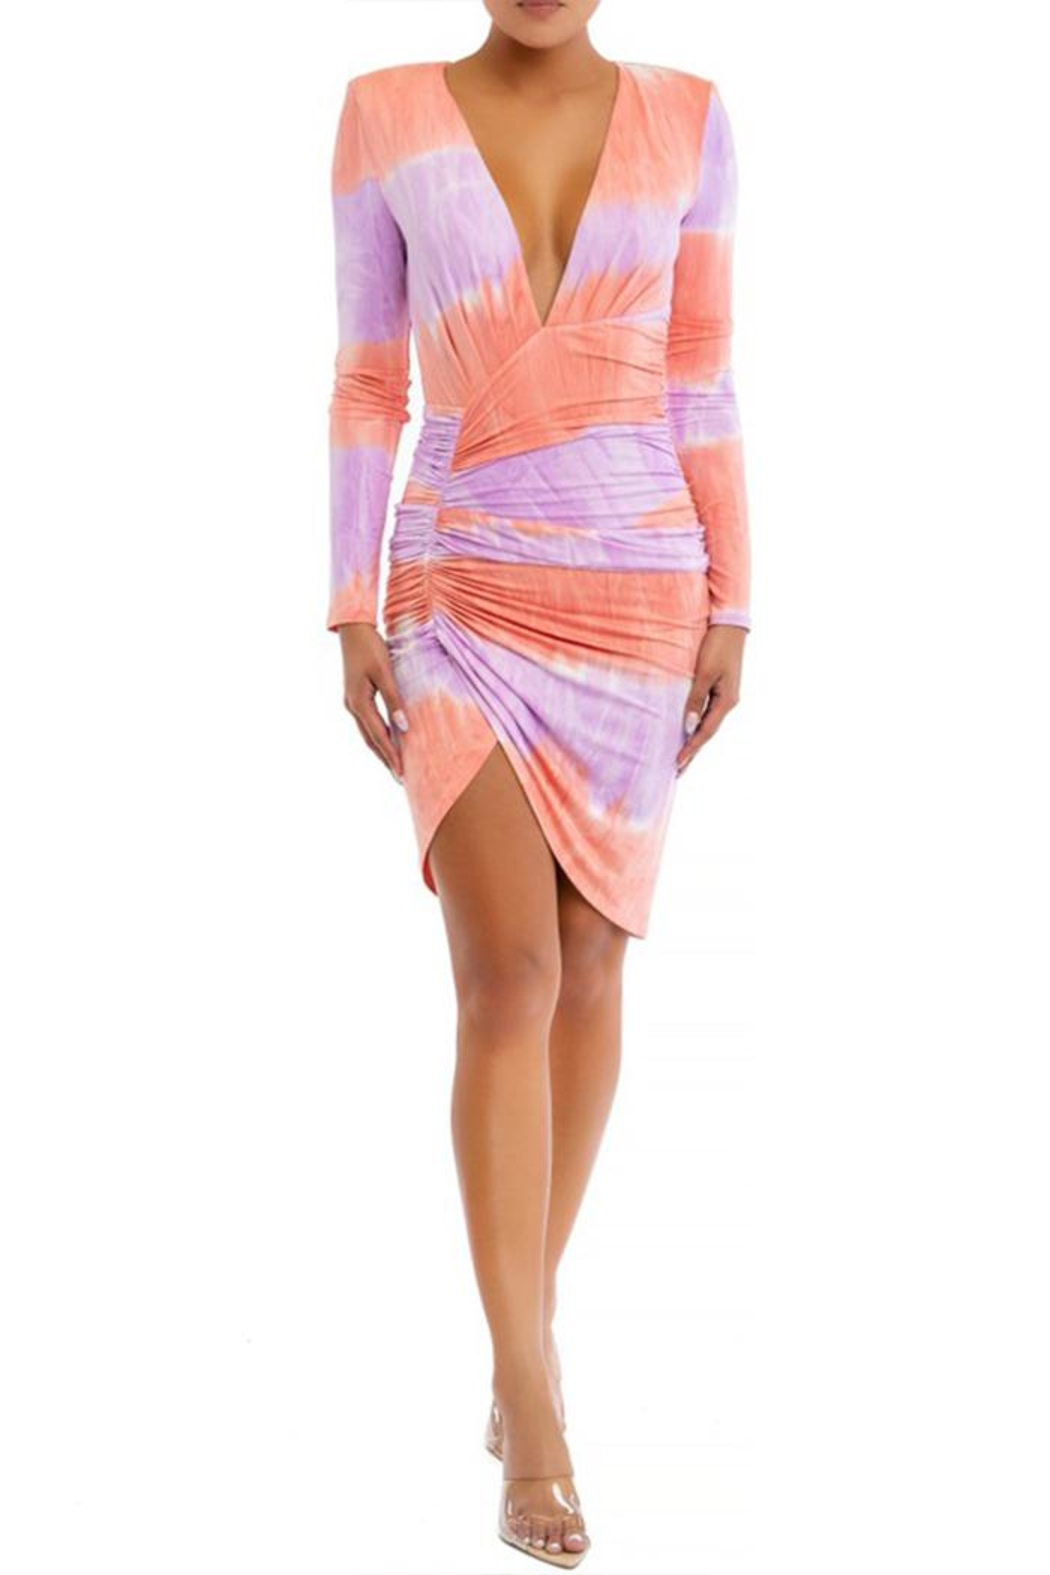 luxxel Tie Dye Mini-Dress - Front Cropped Image